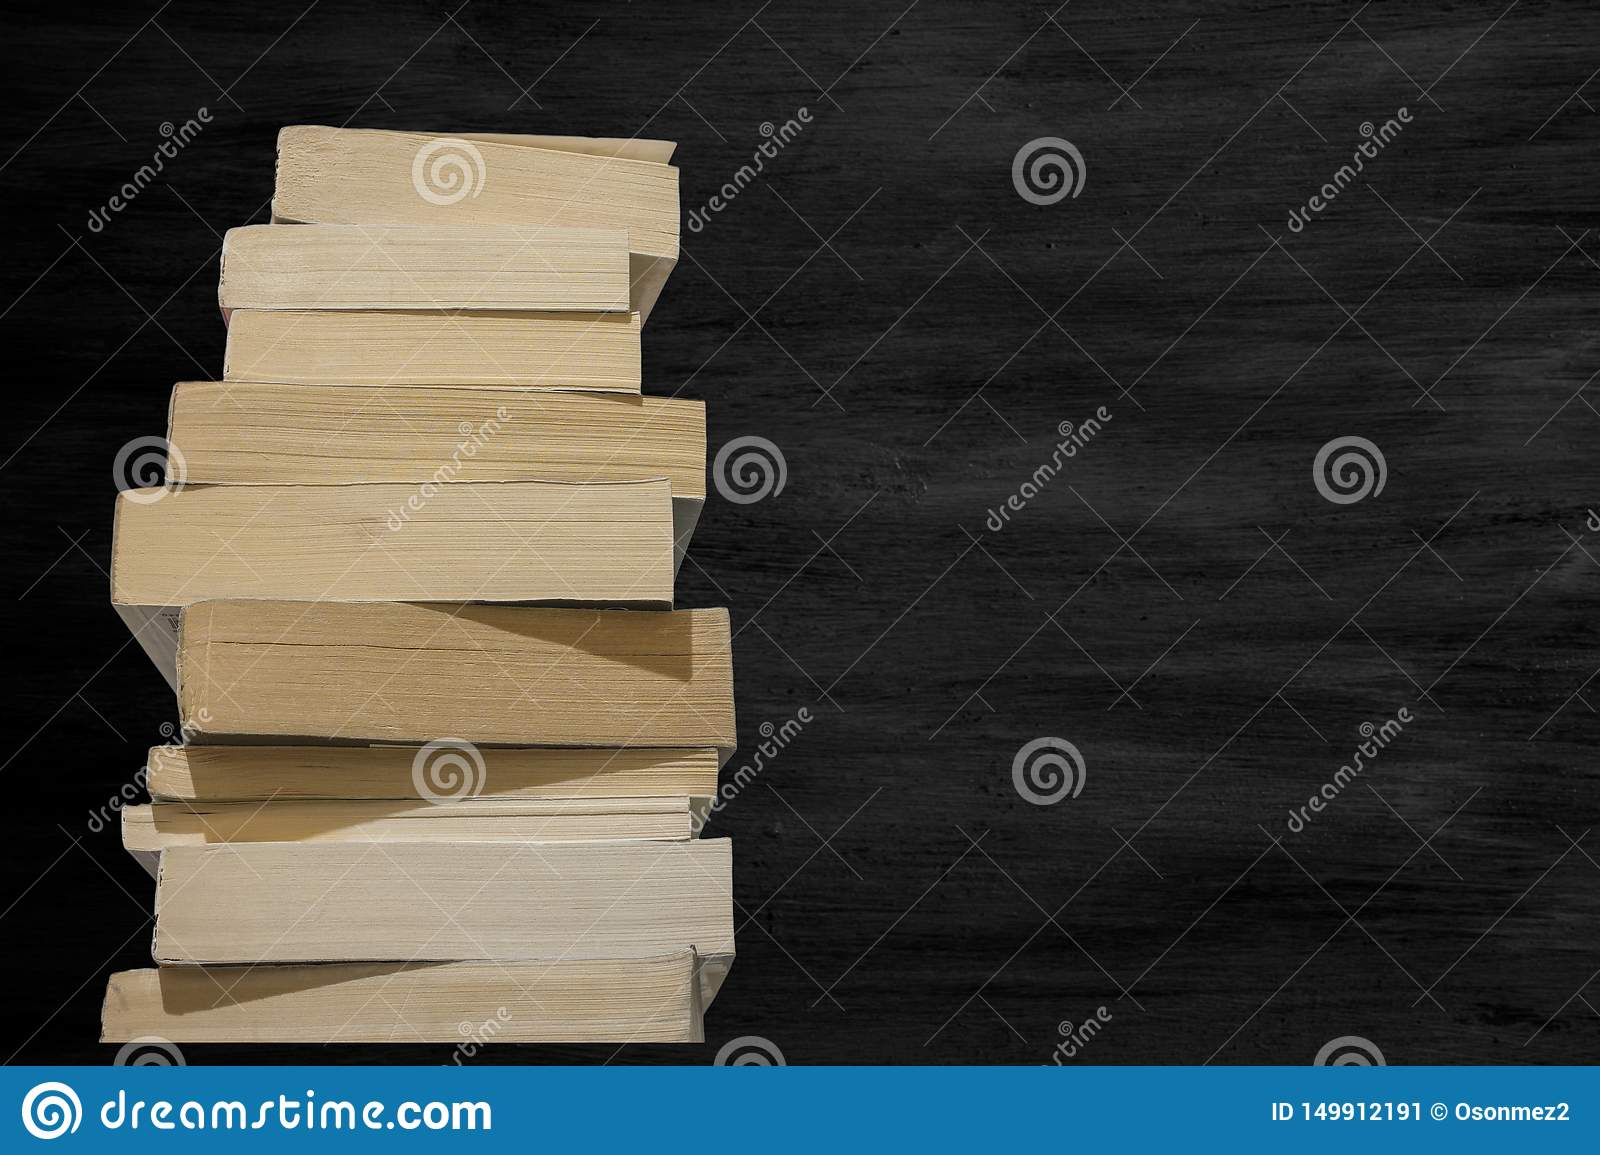 View of thick books lined up in a row and black chalk board in background